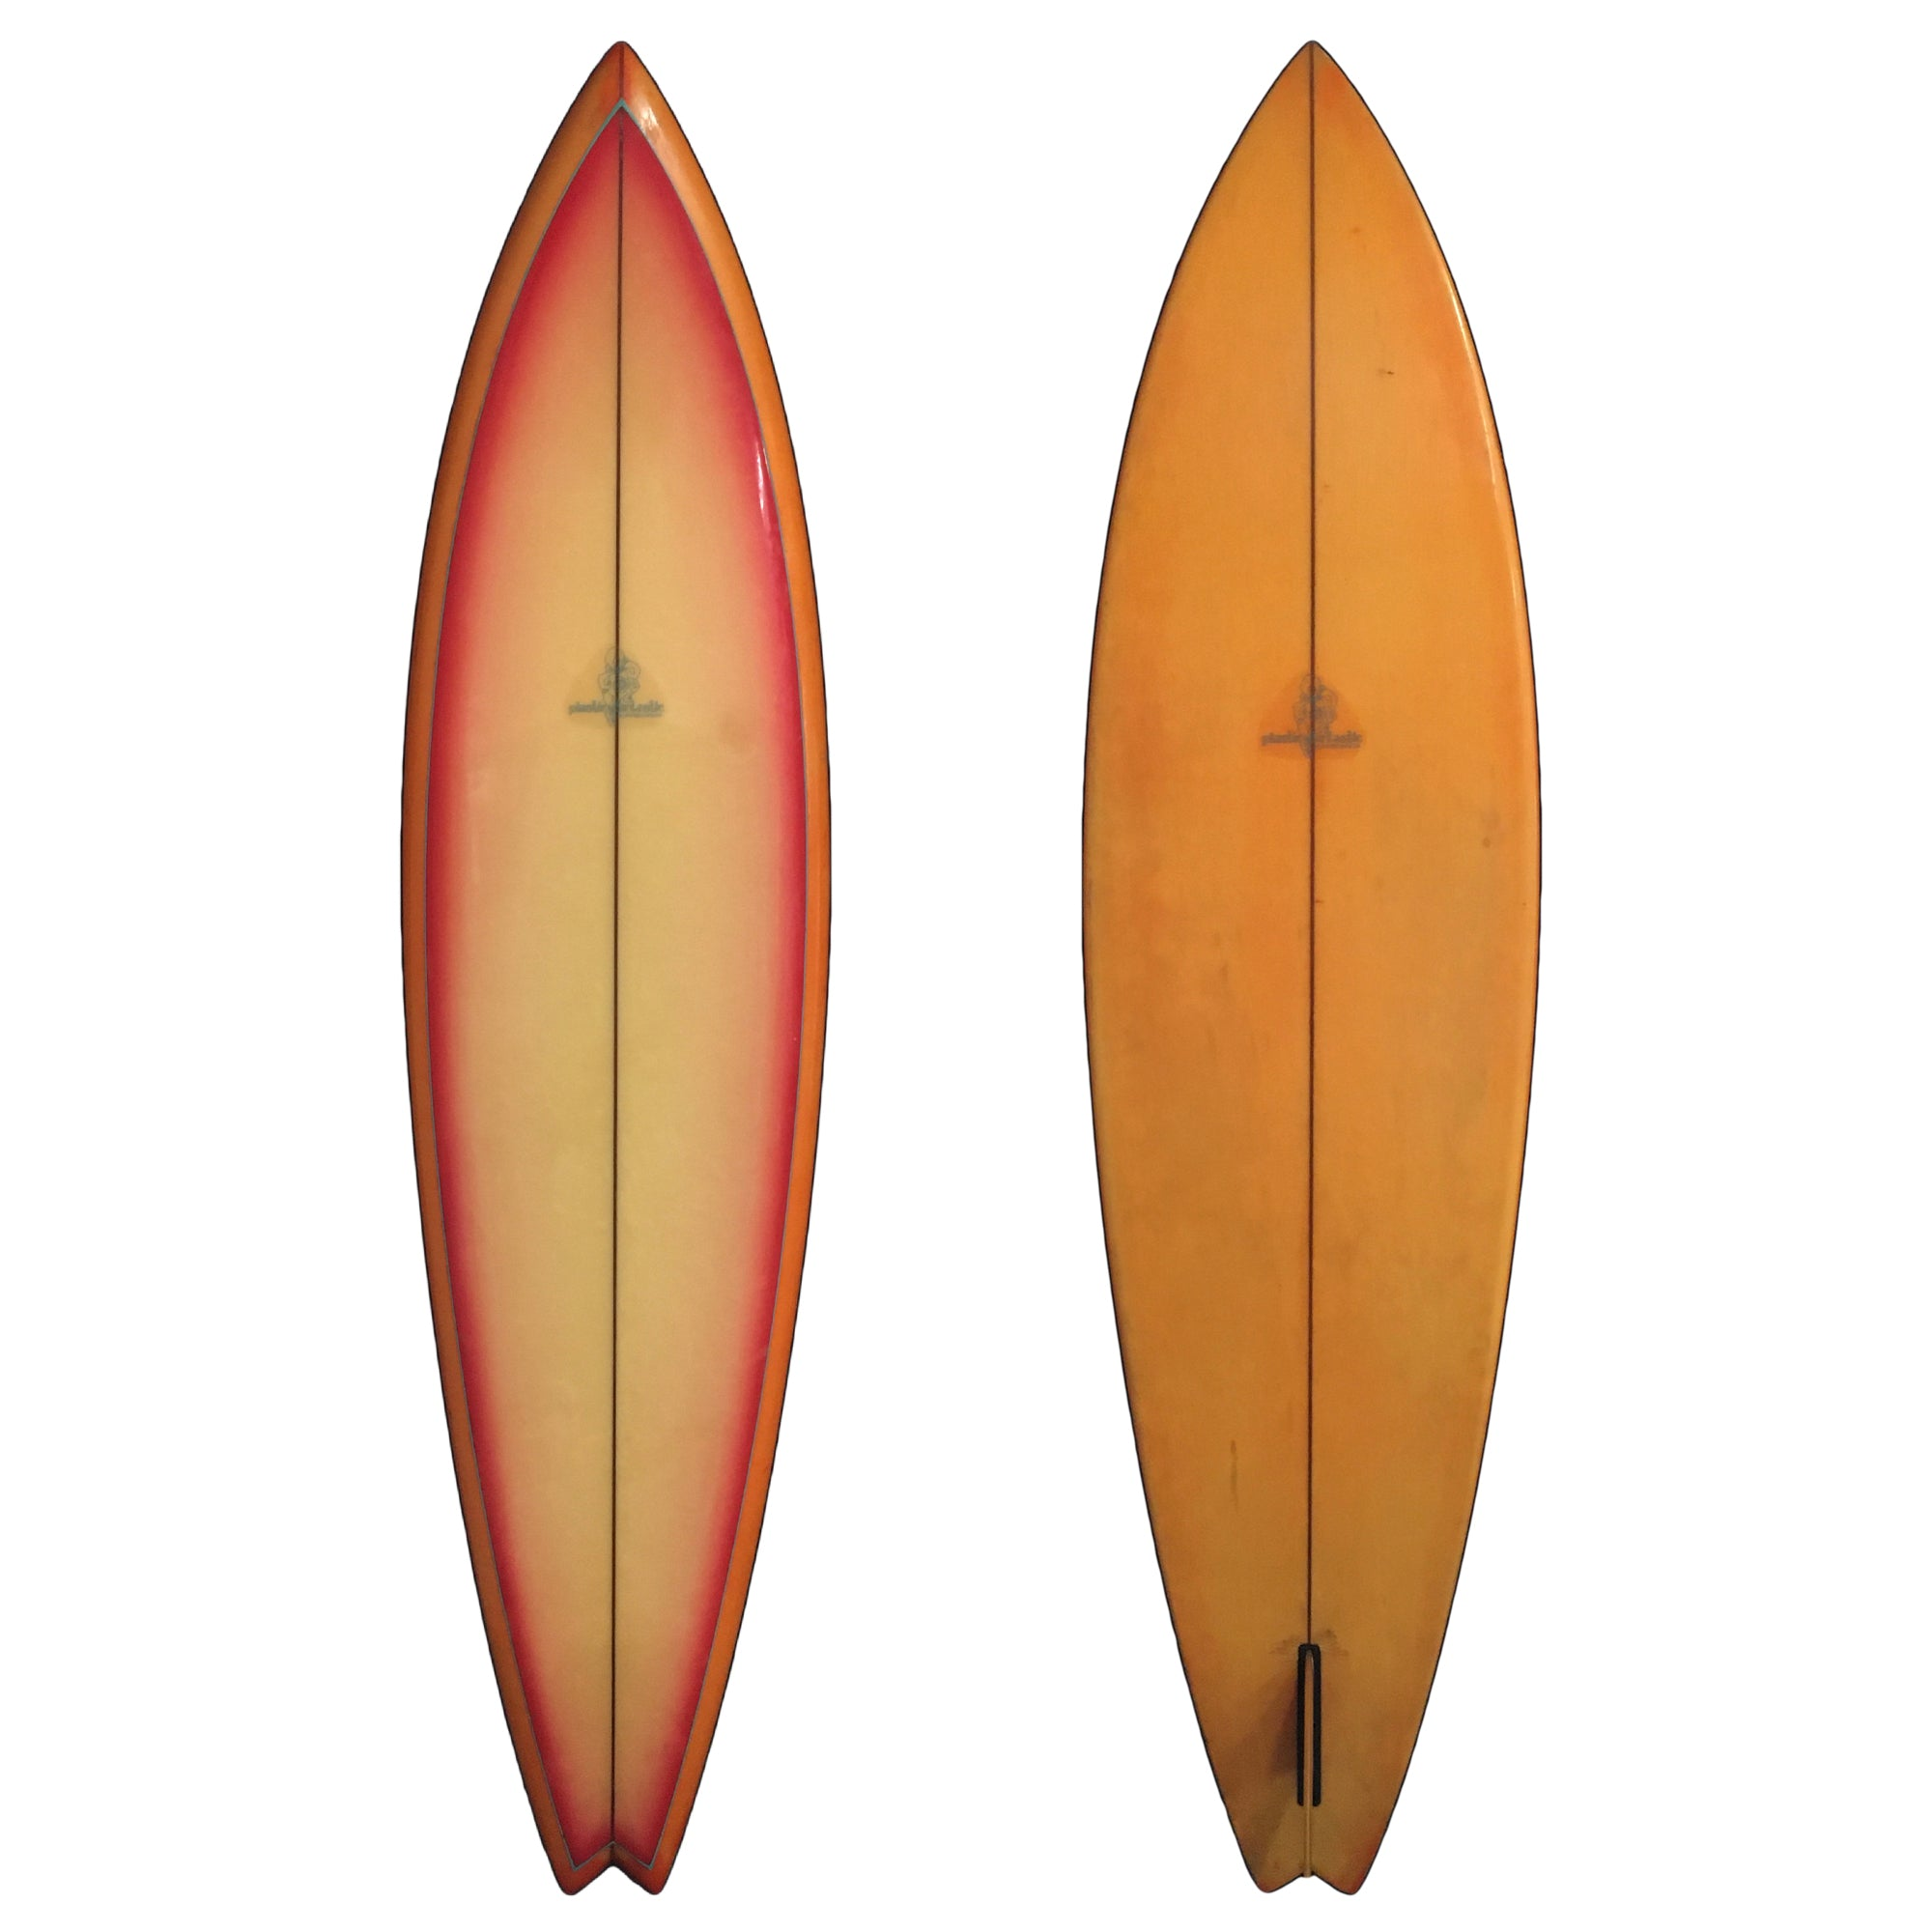 Plastic Fantastic Single Fin 6'9 Collector Surfboard